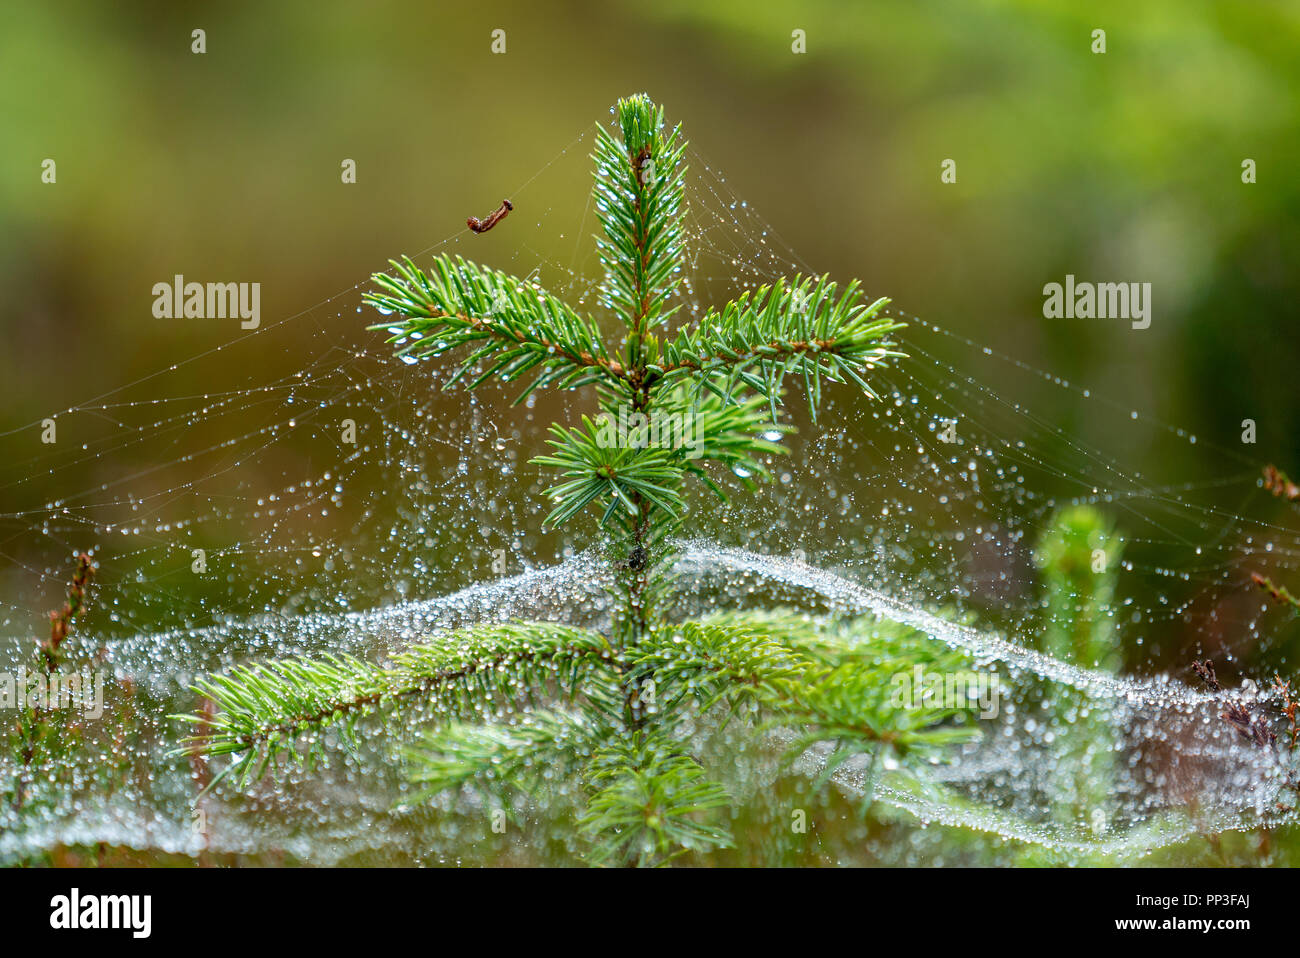 Caterpillar Carry Water Drops on Silk Line Around Christmas TreeStock Photo